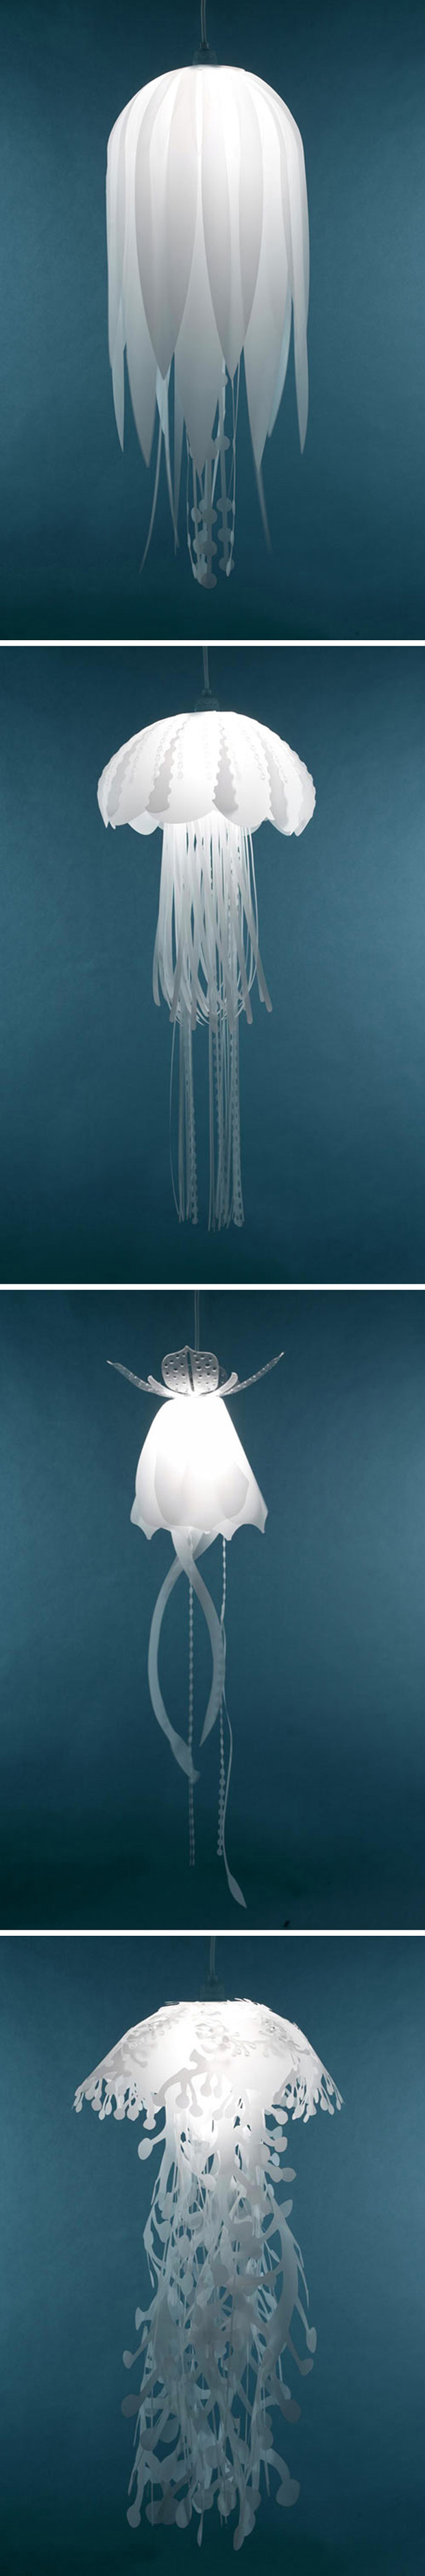 Decorate Your Home With Super Bright Jellyfish Lamps-